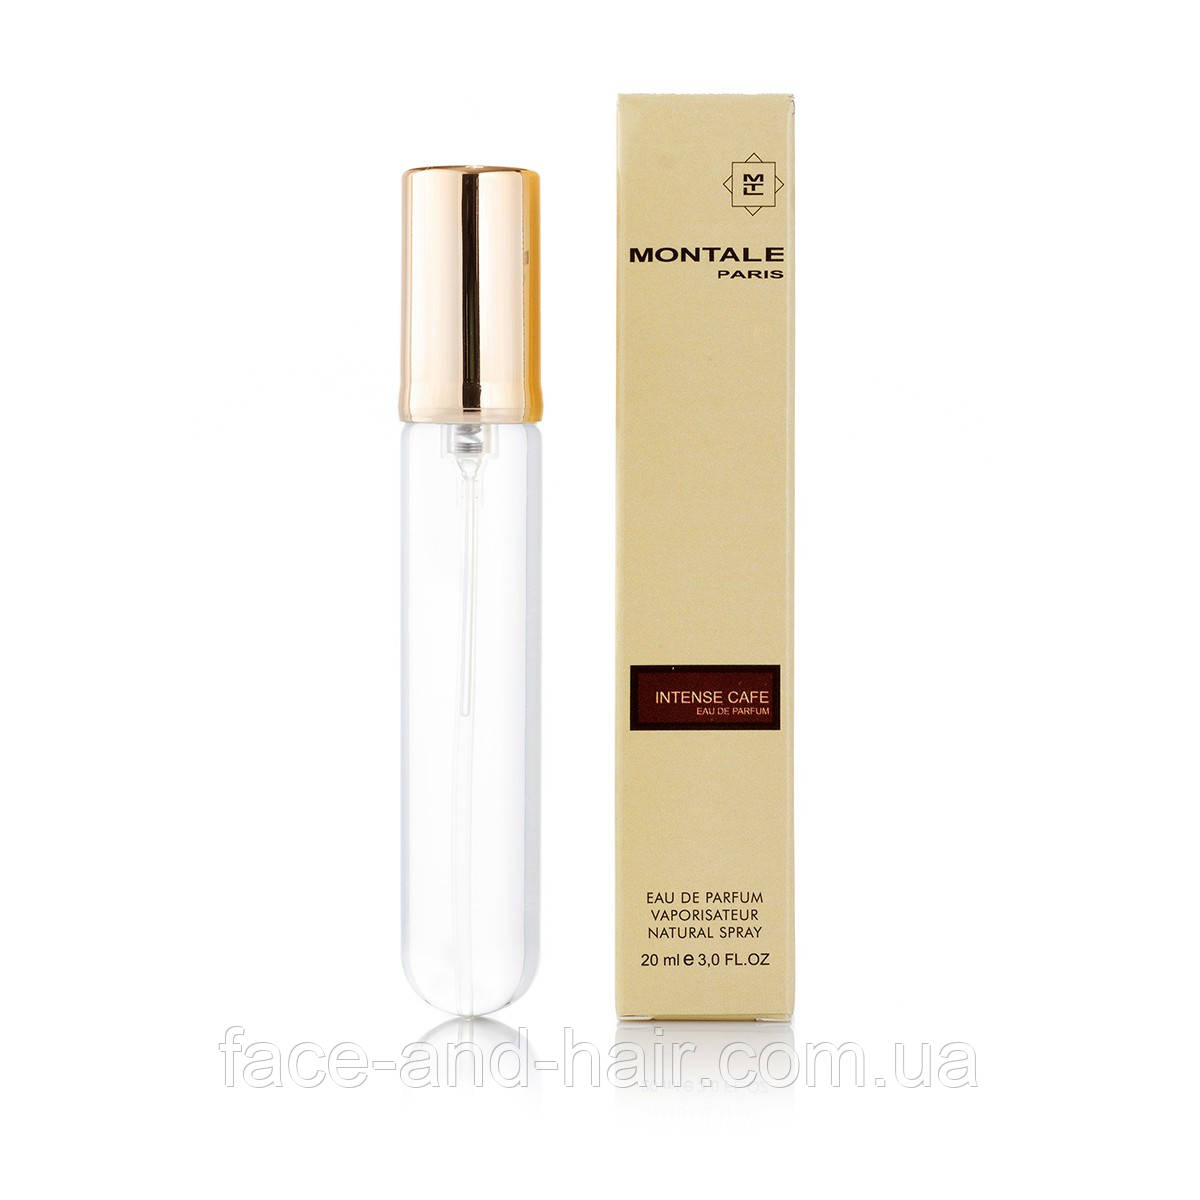 Montale Intense Cafe - Parfum Stick 20ml